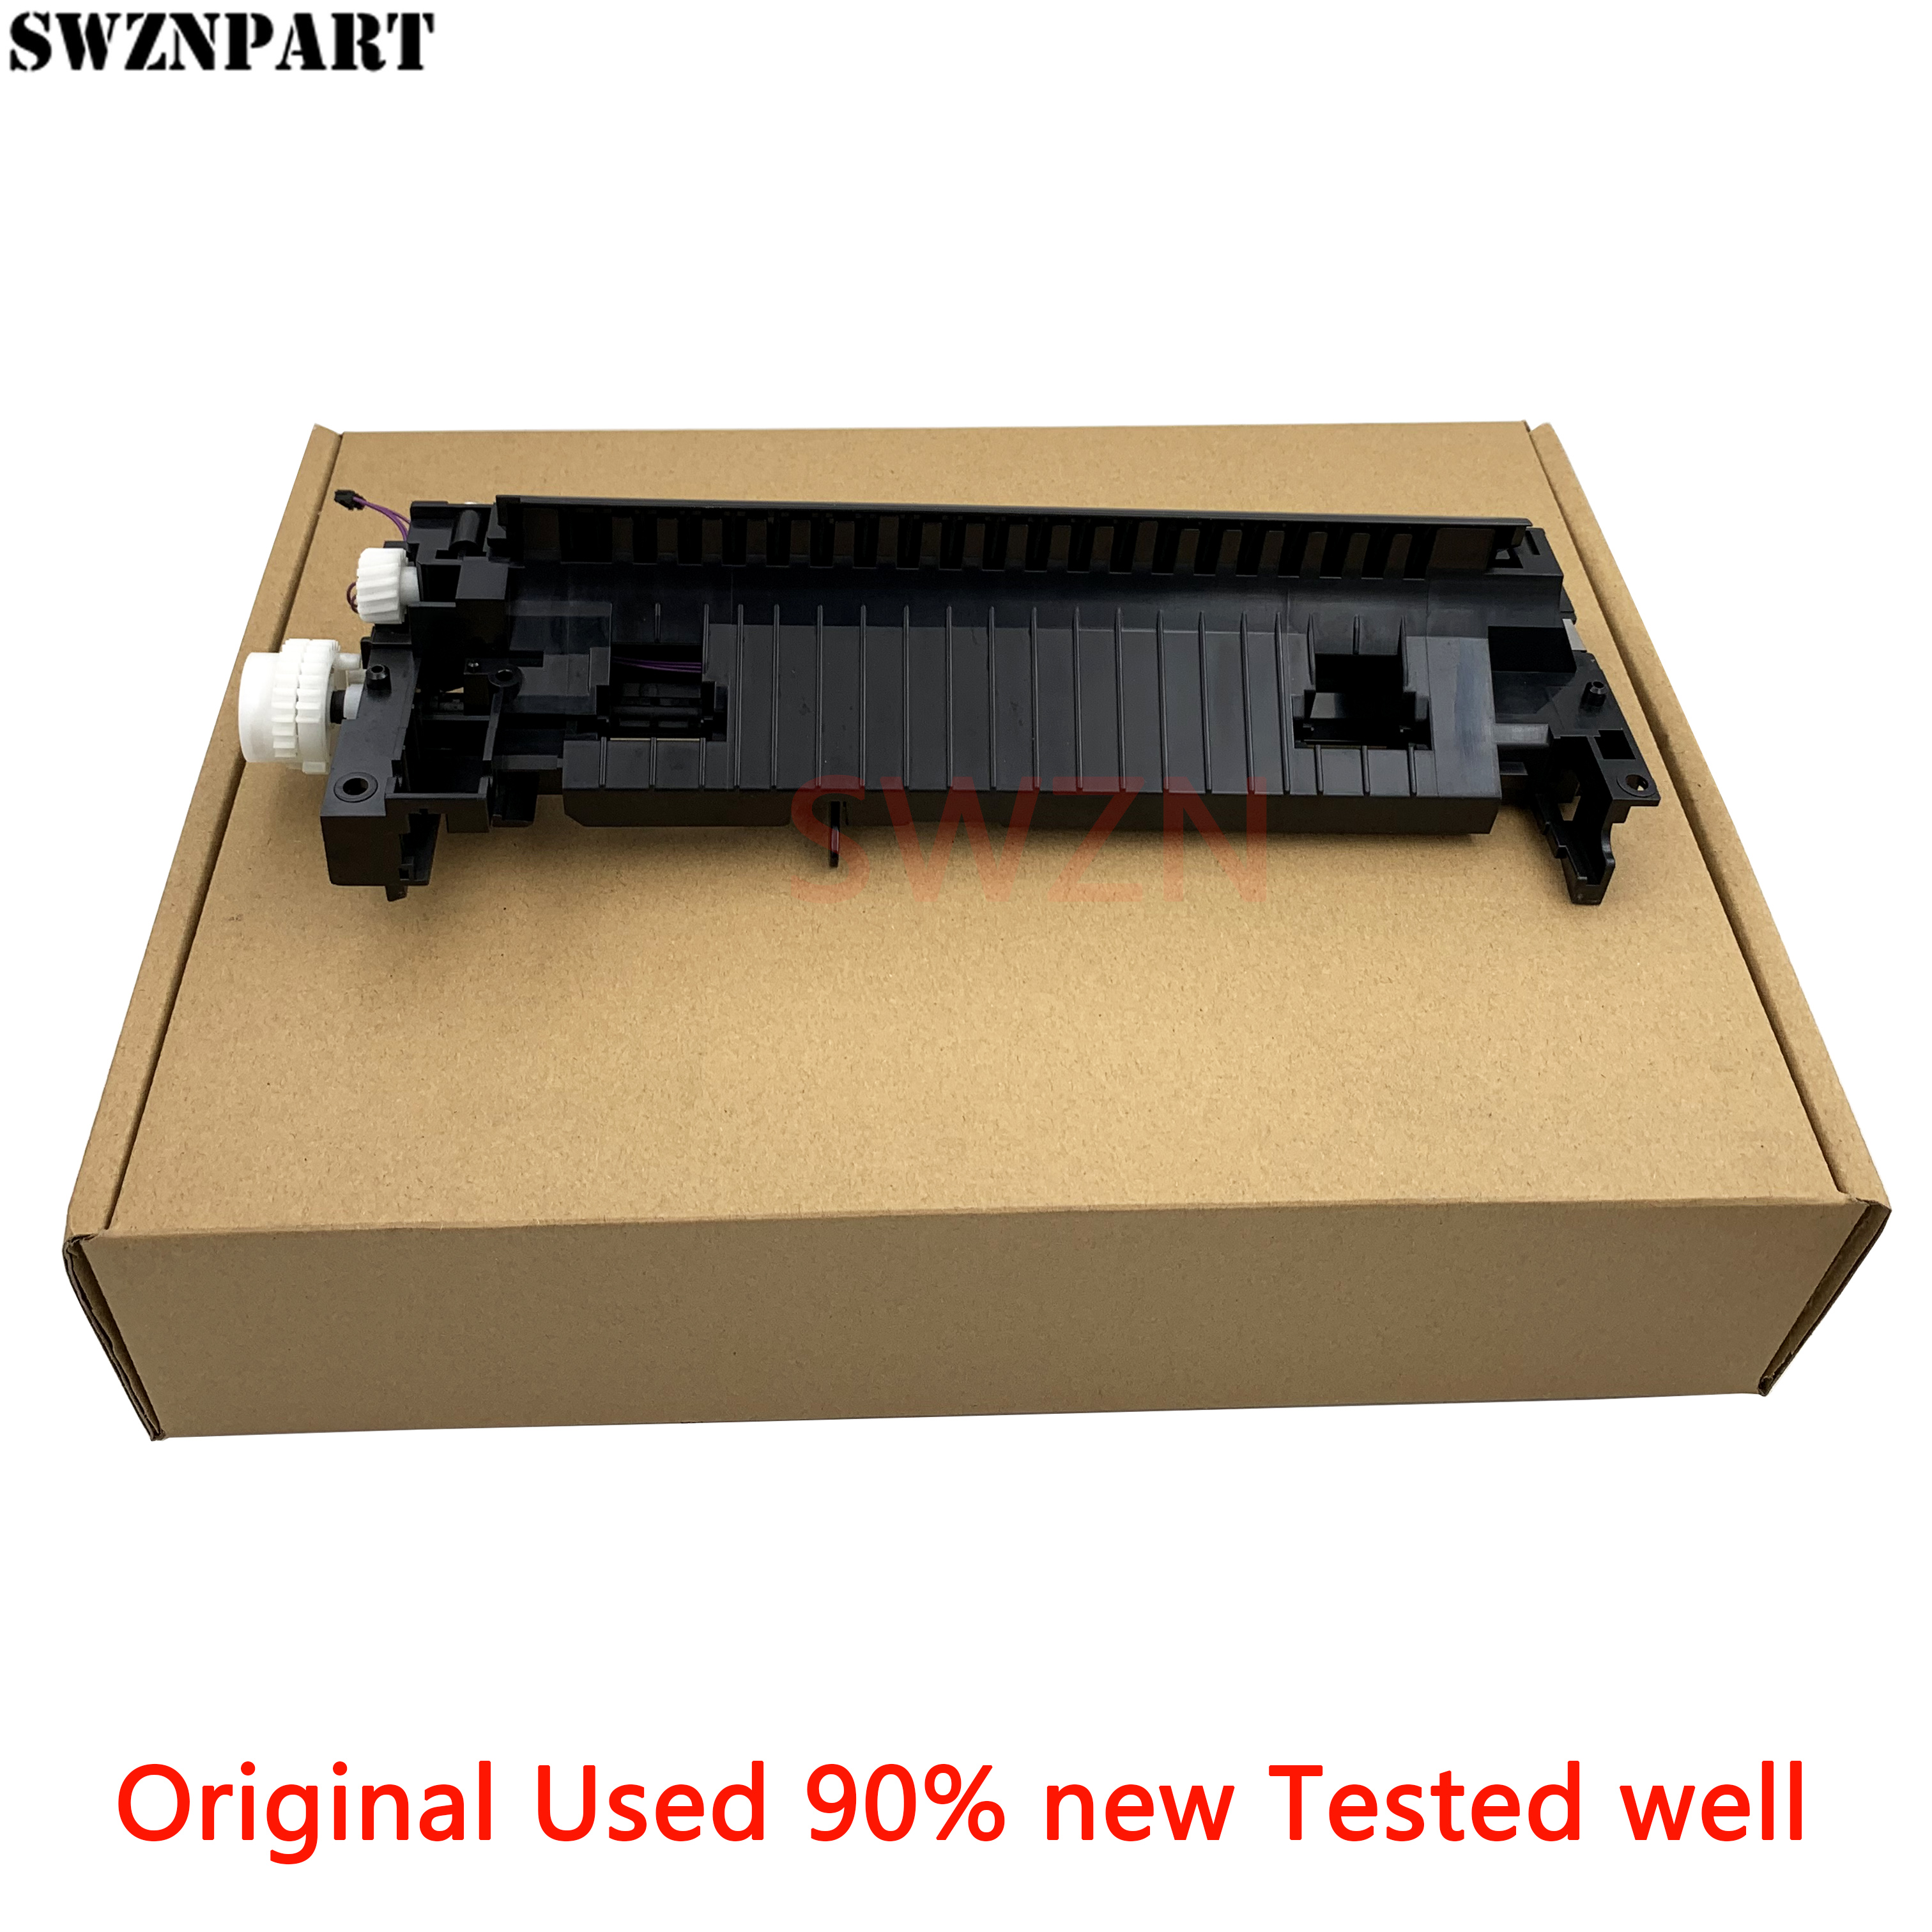 Original Used Cassette  paper pickup assembly For HP P3010 P3015 P3015d P3015dn P3015X 3010 3015 RM1 6268 000CN RM1 6299 000CN|Printer Parts| |  - title=